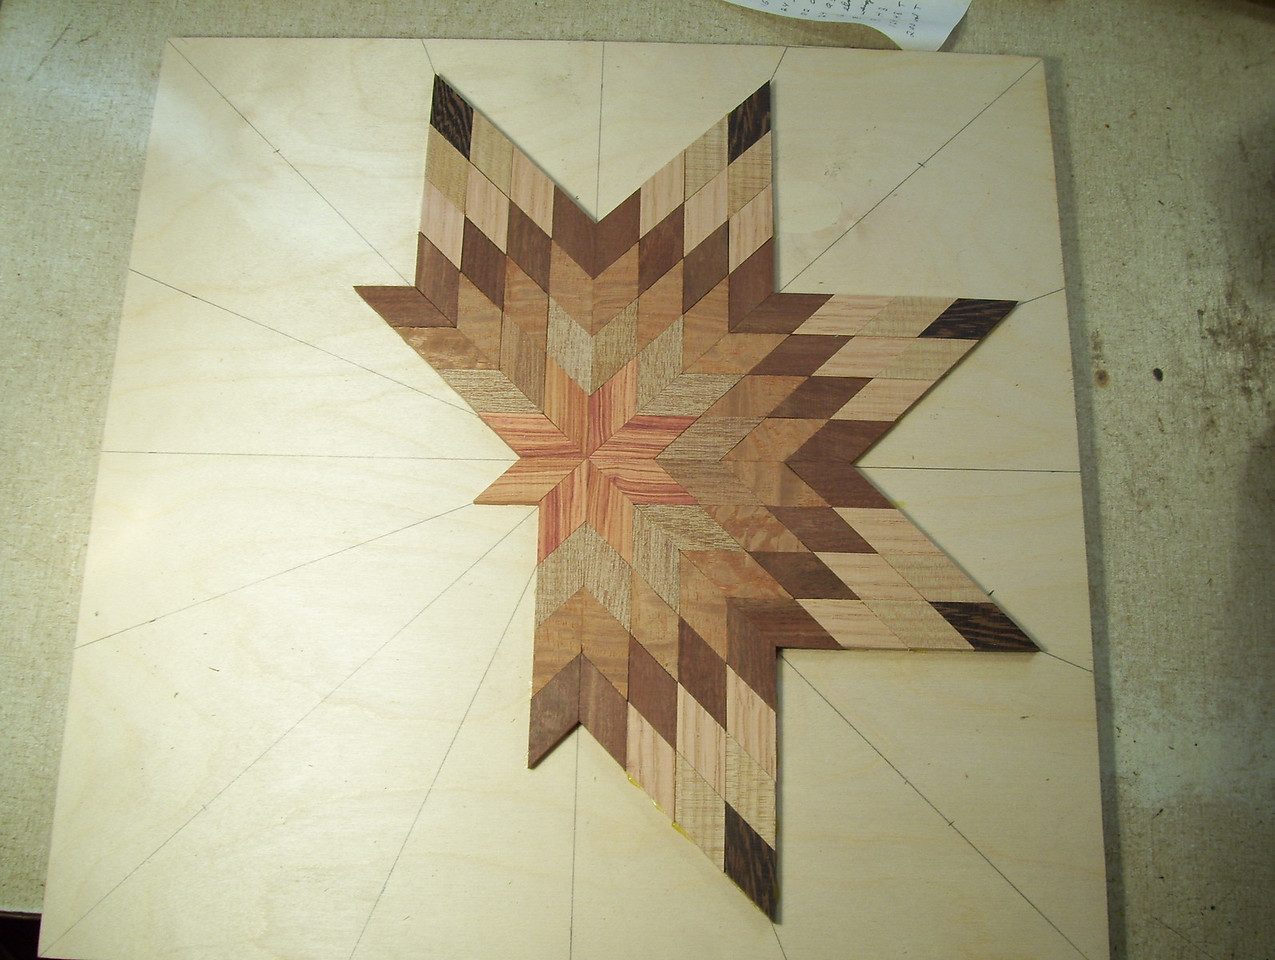 Making a Lazy Susan #12<br /> I continue this process one point at a time on around the star to the last two points.